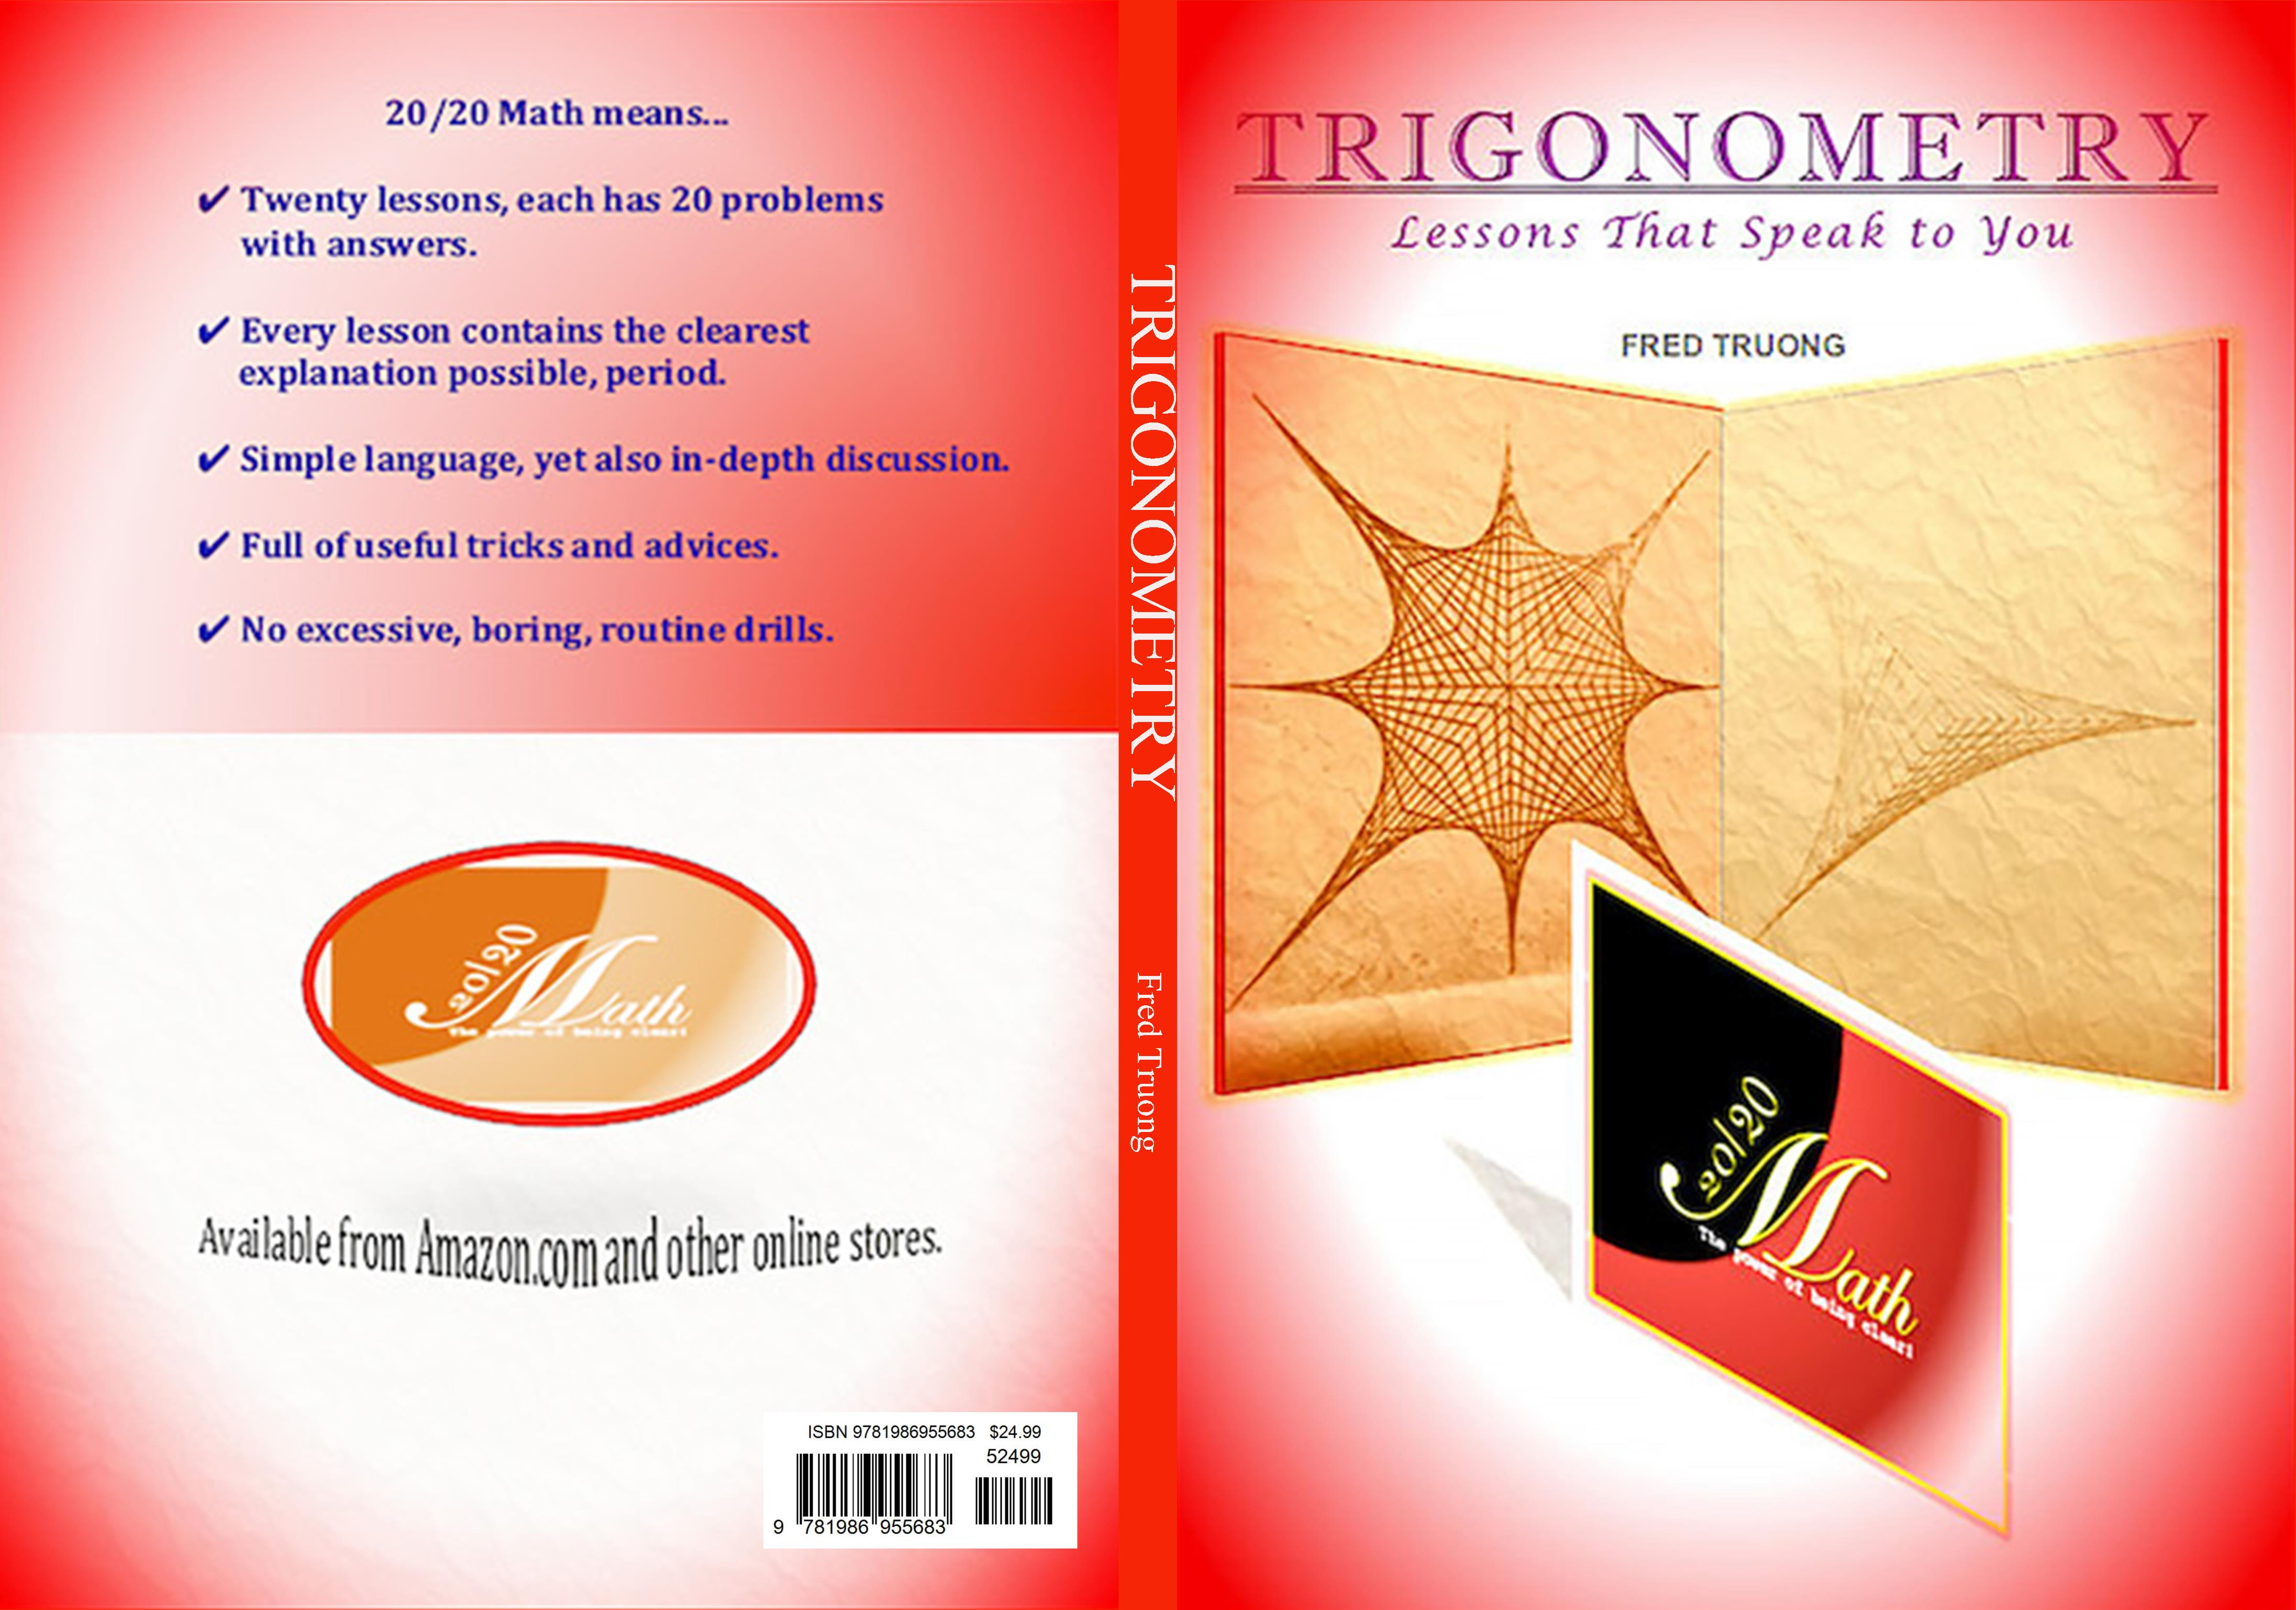 Trigonometry - Lessons That Speak to You cover image